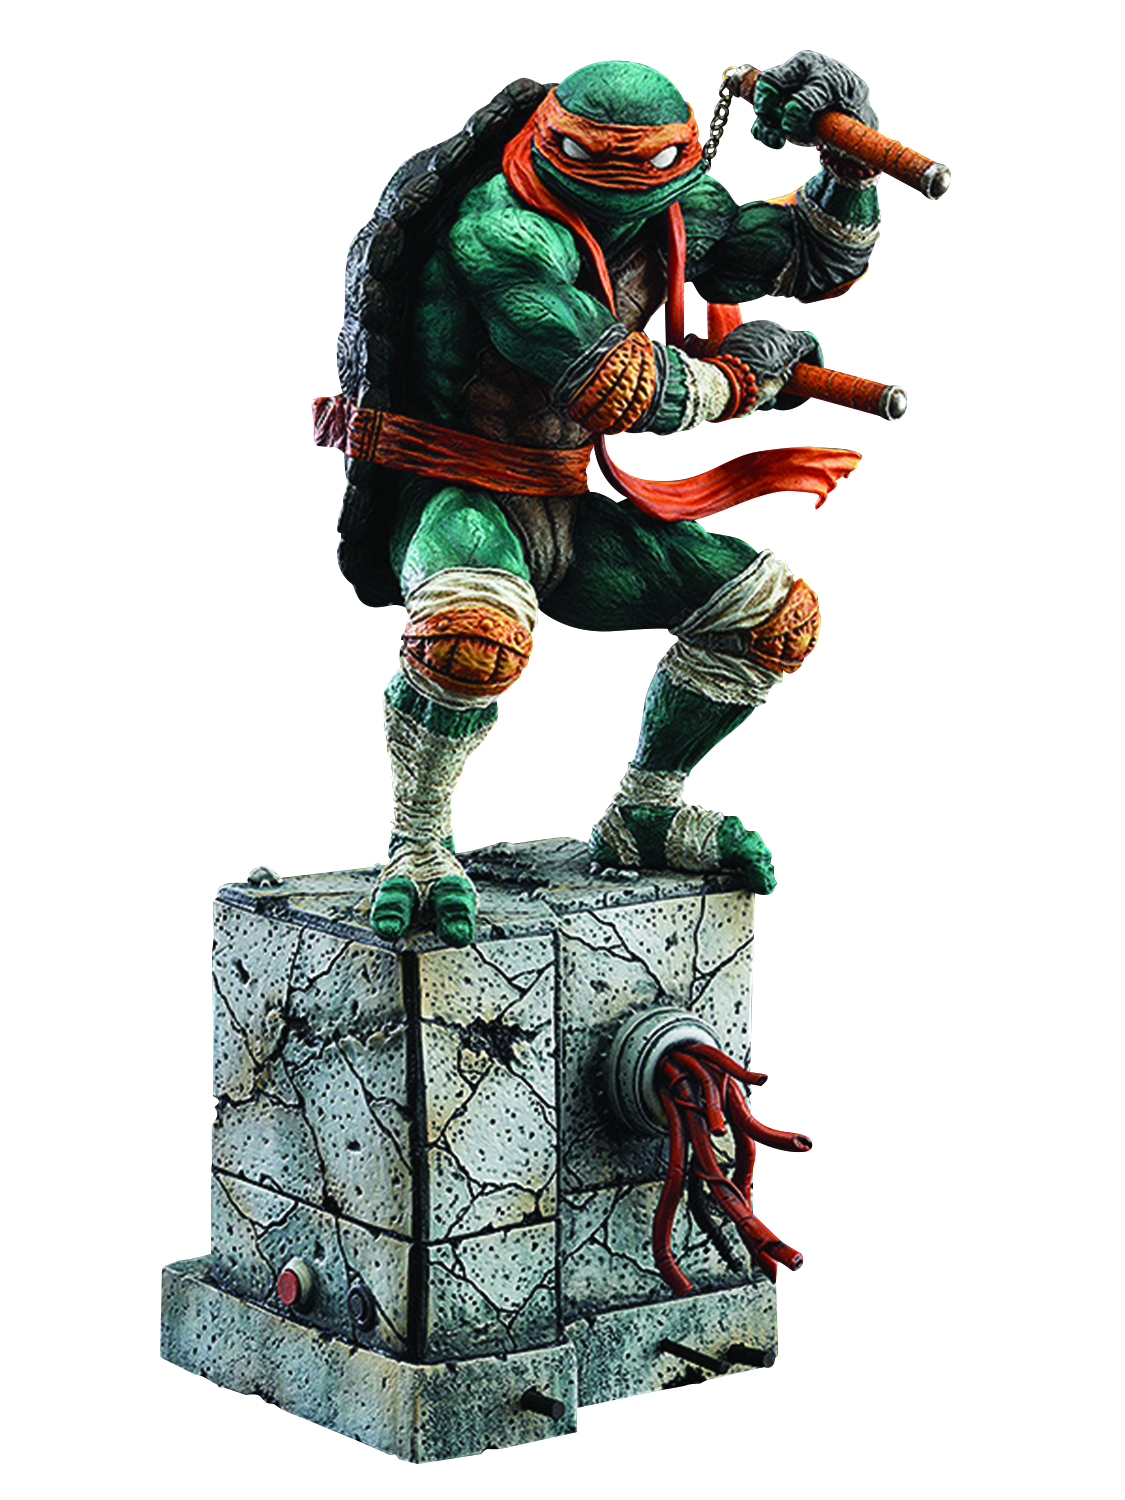 TMNT MICHELANGELO PVC FIG